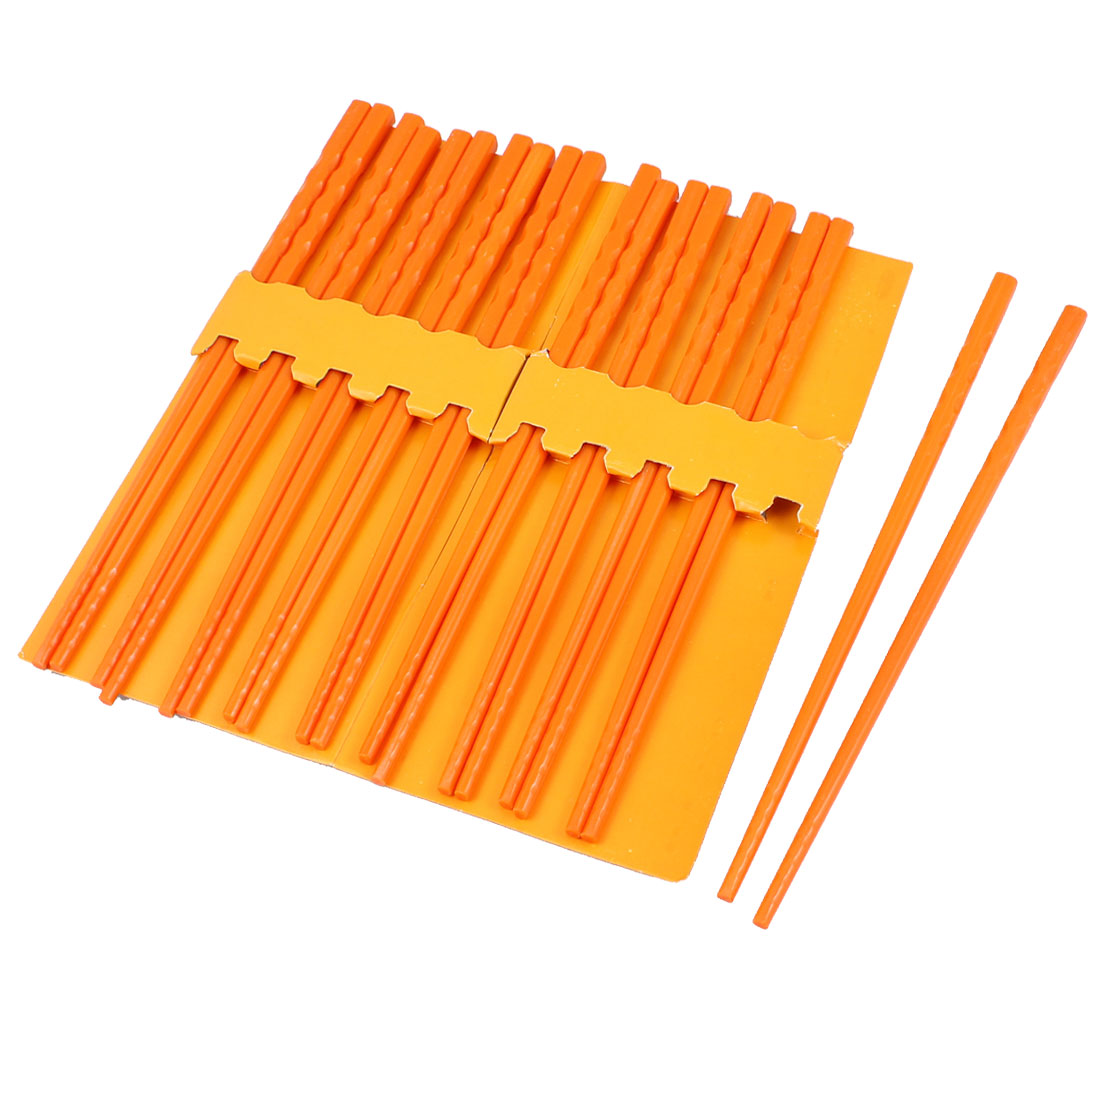 10 Pairs Kitchen Dishware Nonslip Plastic Chopsticks Orange